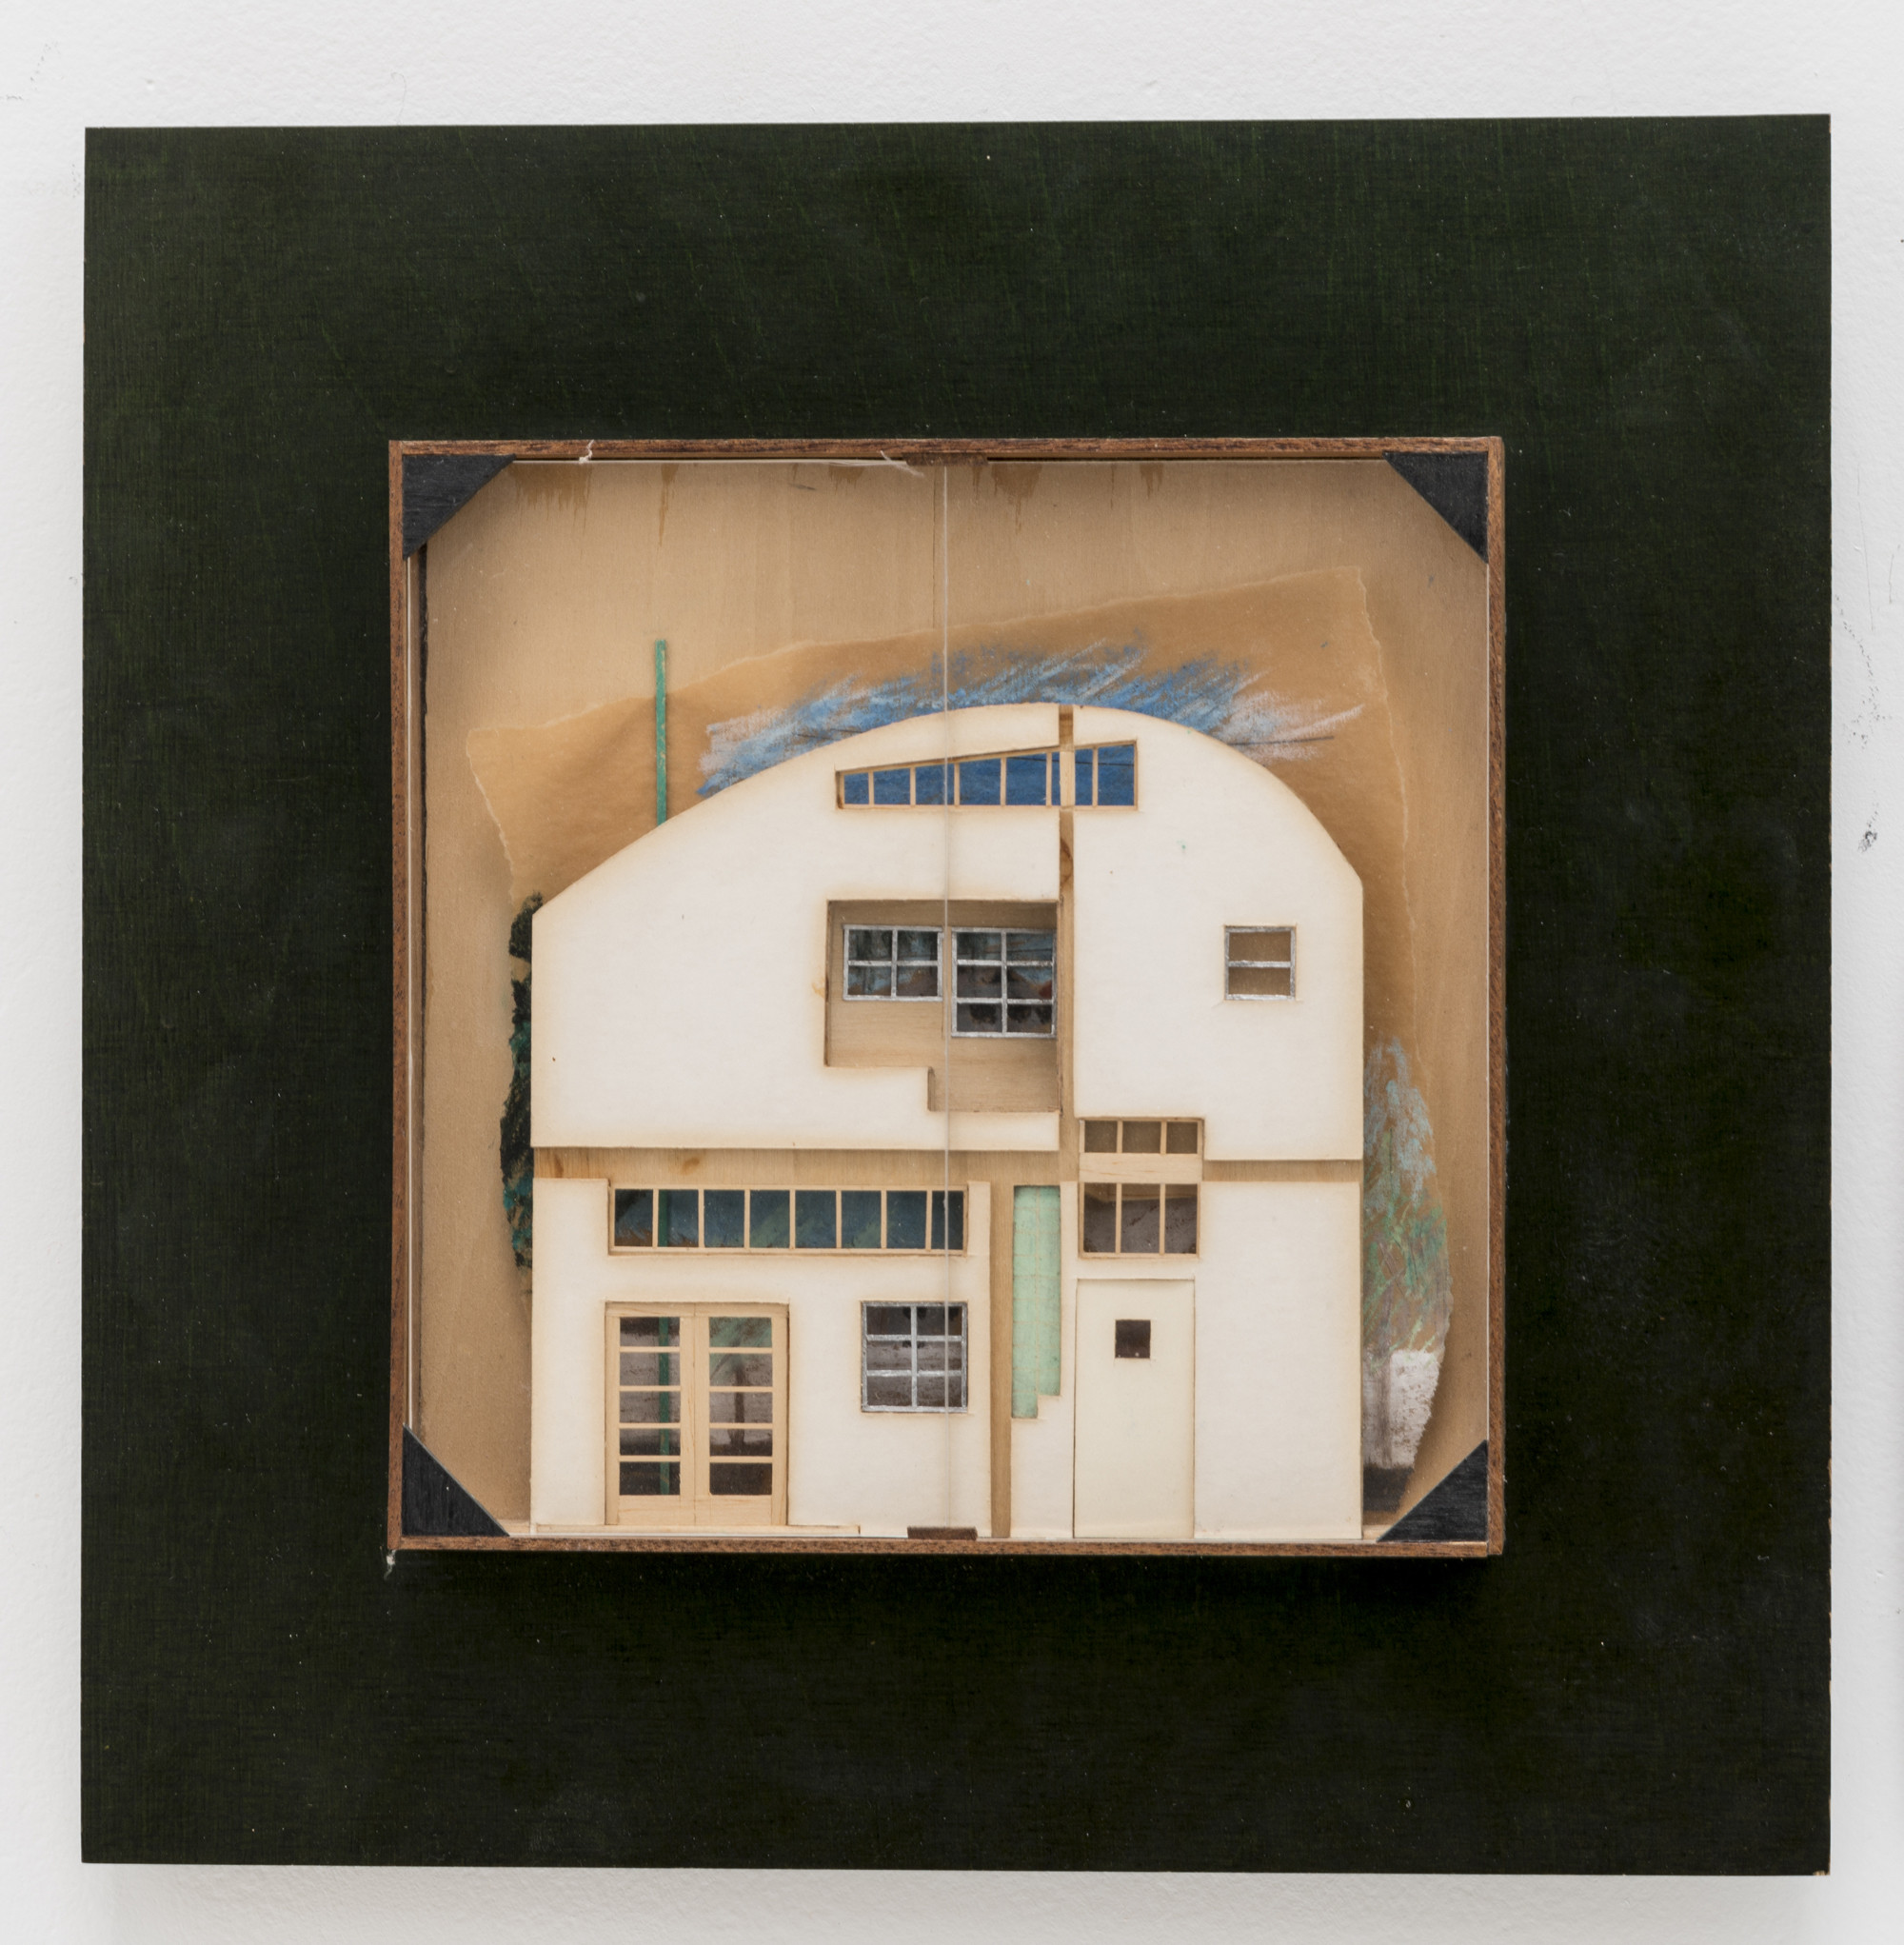 "Caplin Residence / Venice, California, 1978 / Frederick Fisher / Relief model of interior façade / Mixed media, 13"" x 13"" / Collection of the architect. Photo by Joshua White"